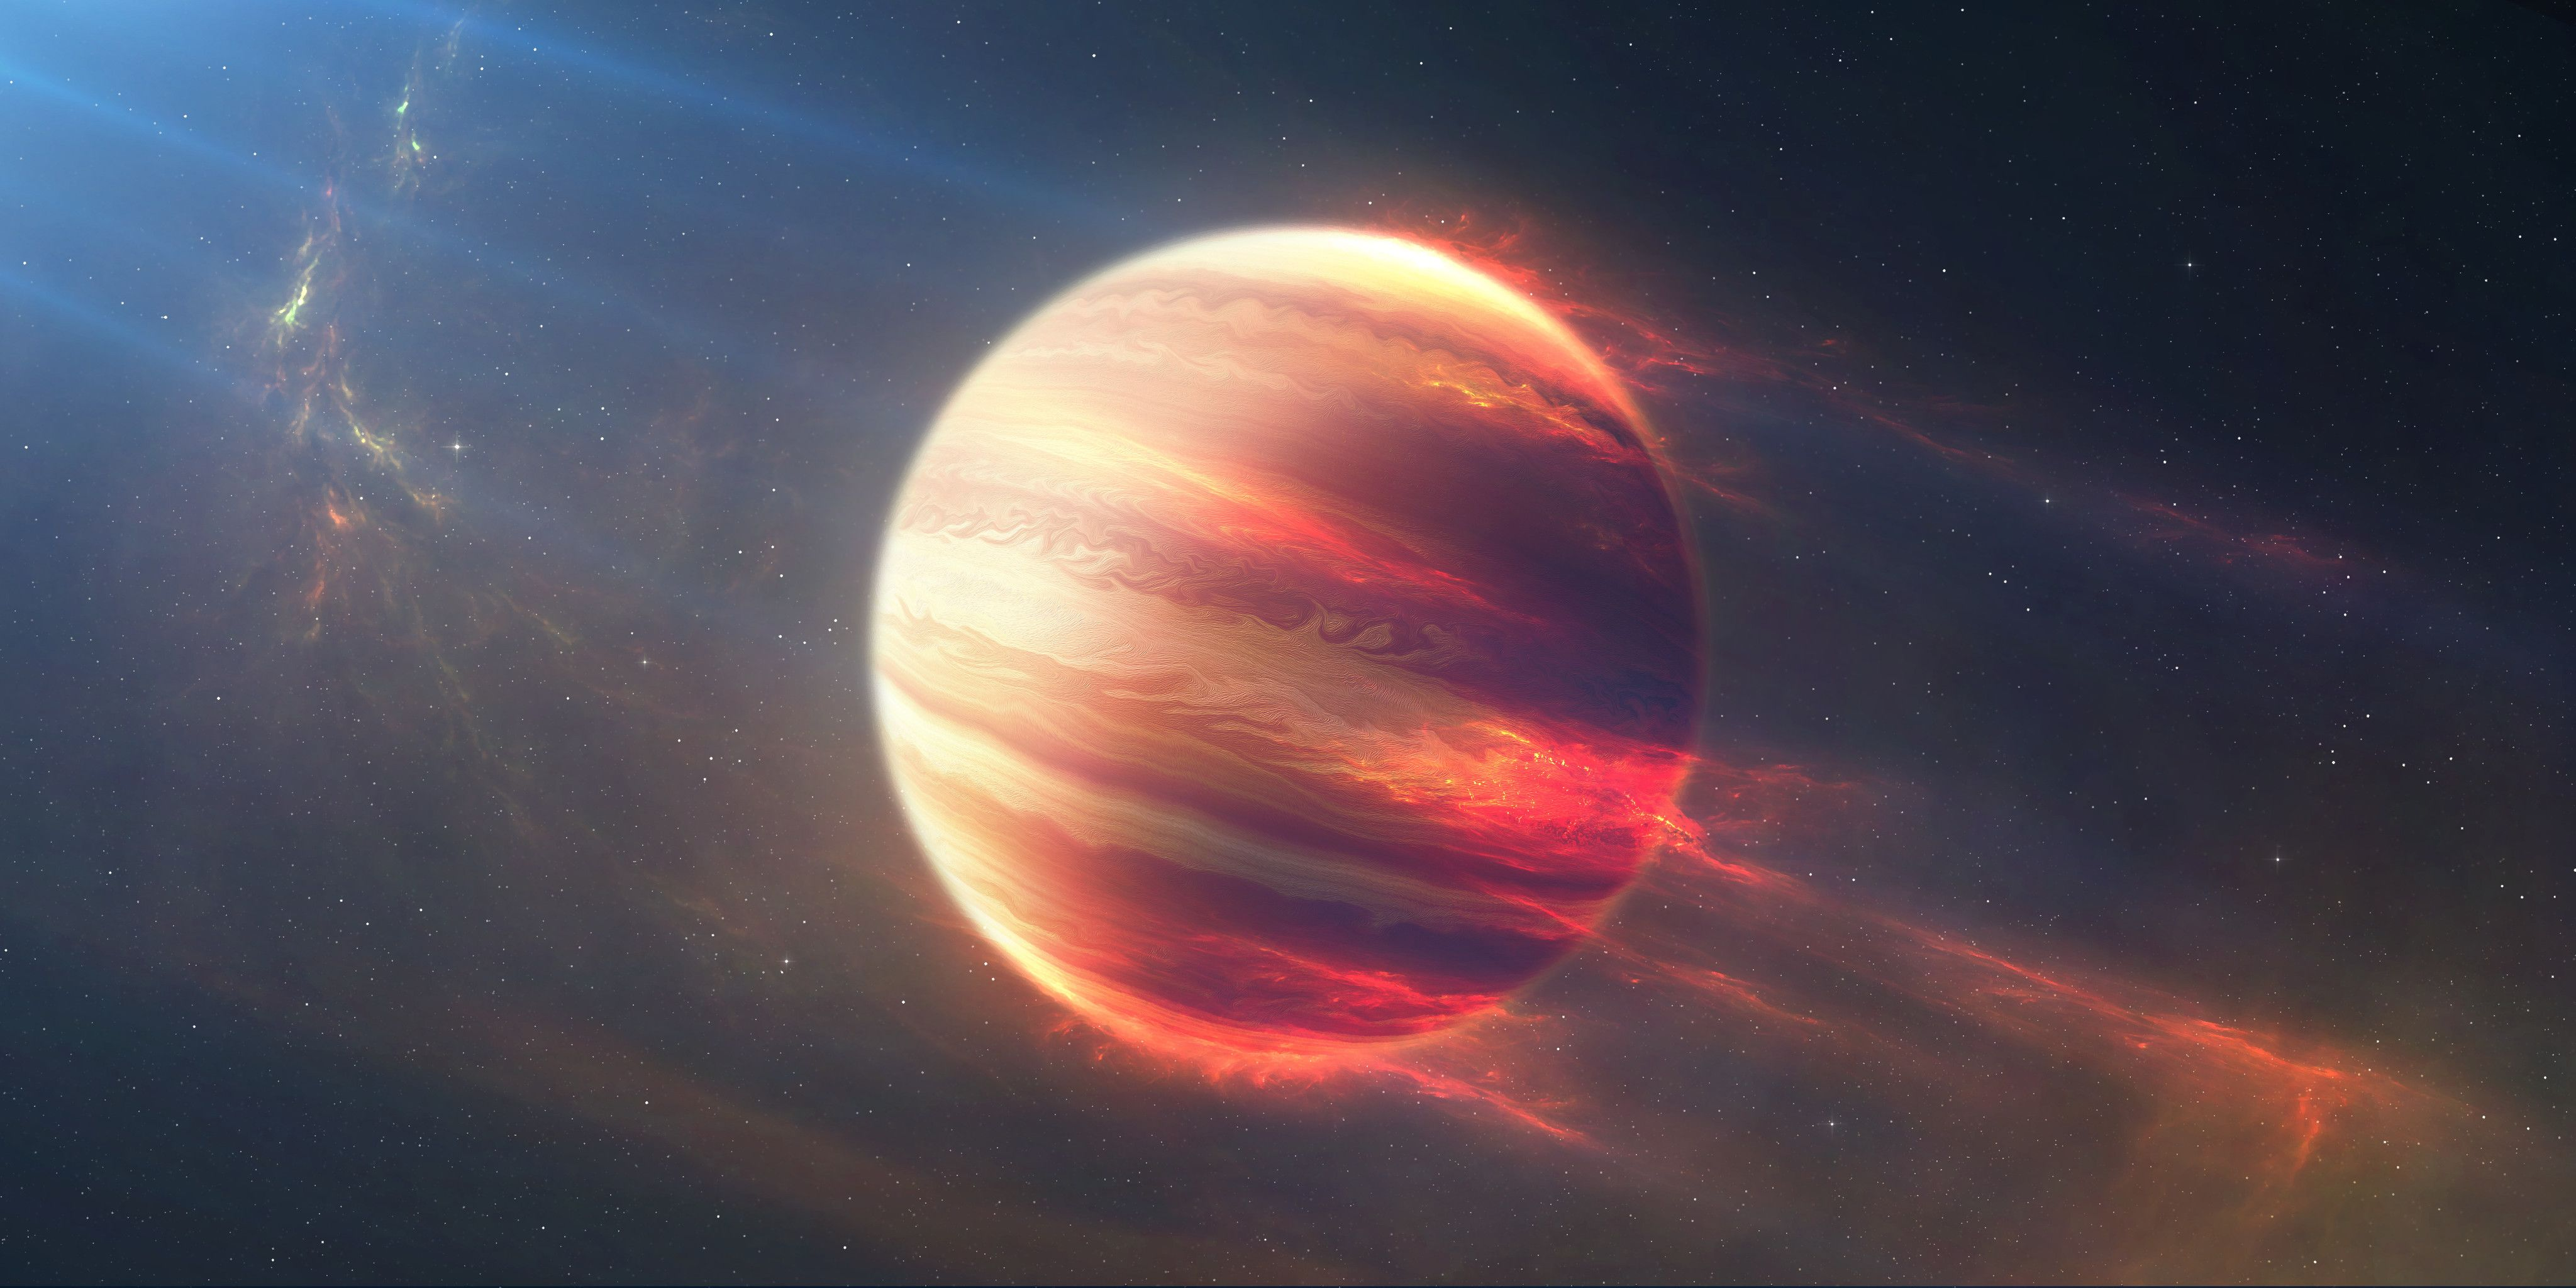 4k Planet Wallpapers Top Free 4k Planet Backgrounds Wallpaperaccess